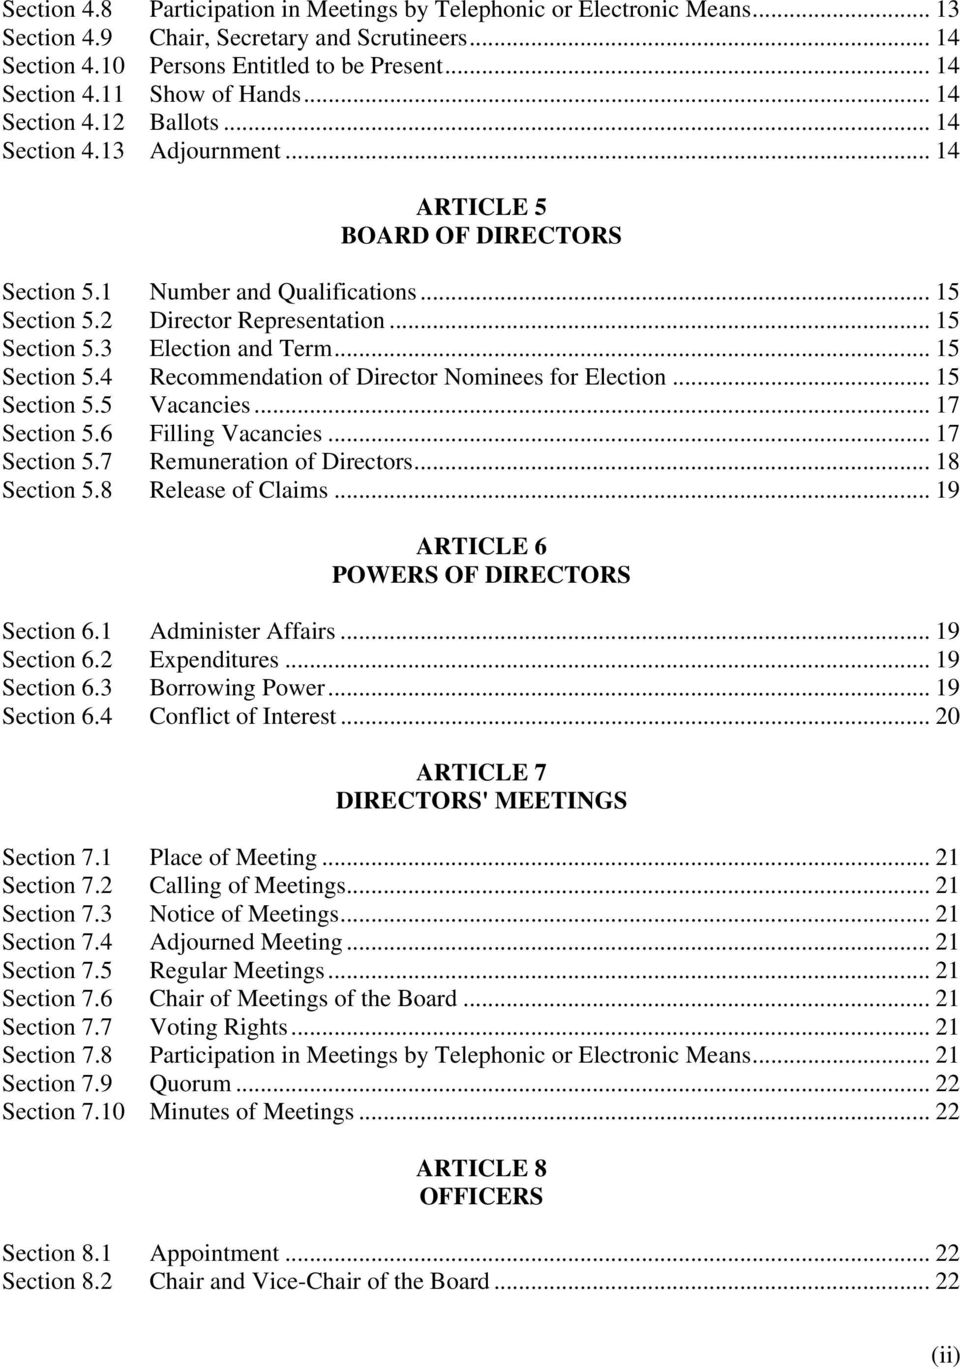 .. 15 Section 5.4 Recommendation of Director Nominees for Election... 15 Section 5.5 Vacancies... 17 Section 5.6 Filling Vacancies... 17 Section 5.7 Remuneration of Directors... 18 Section 5.